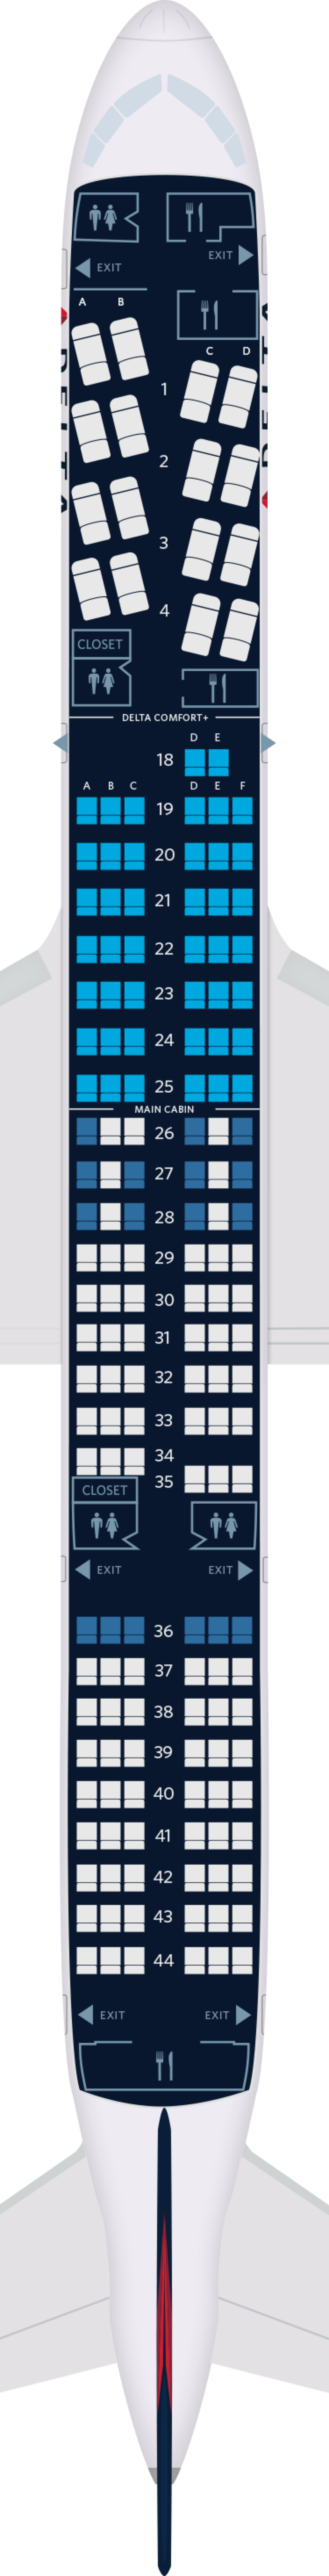 Boeing 757-200 Aircraft Seat Maps, Specs & Amenities : Delta